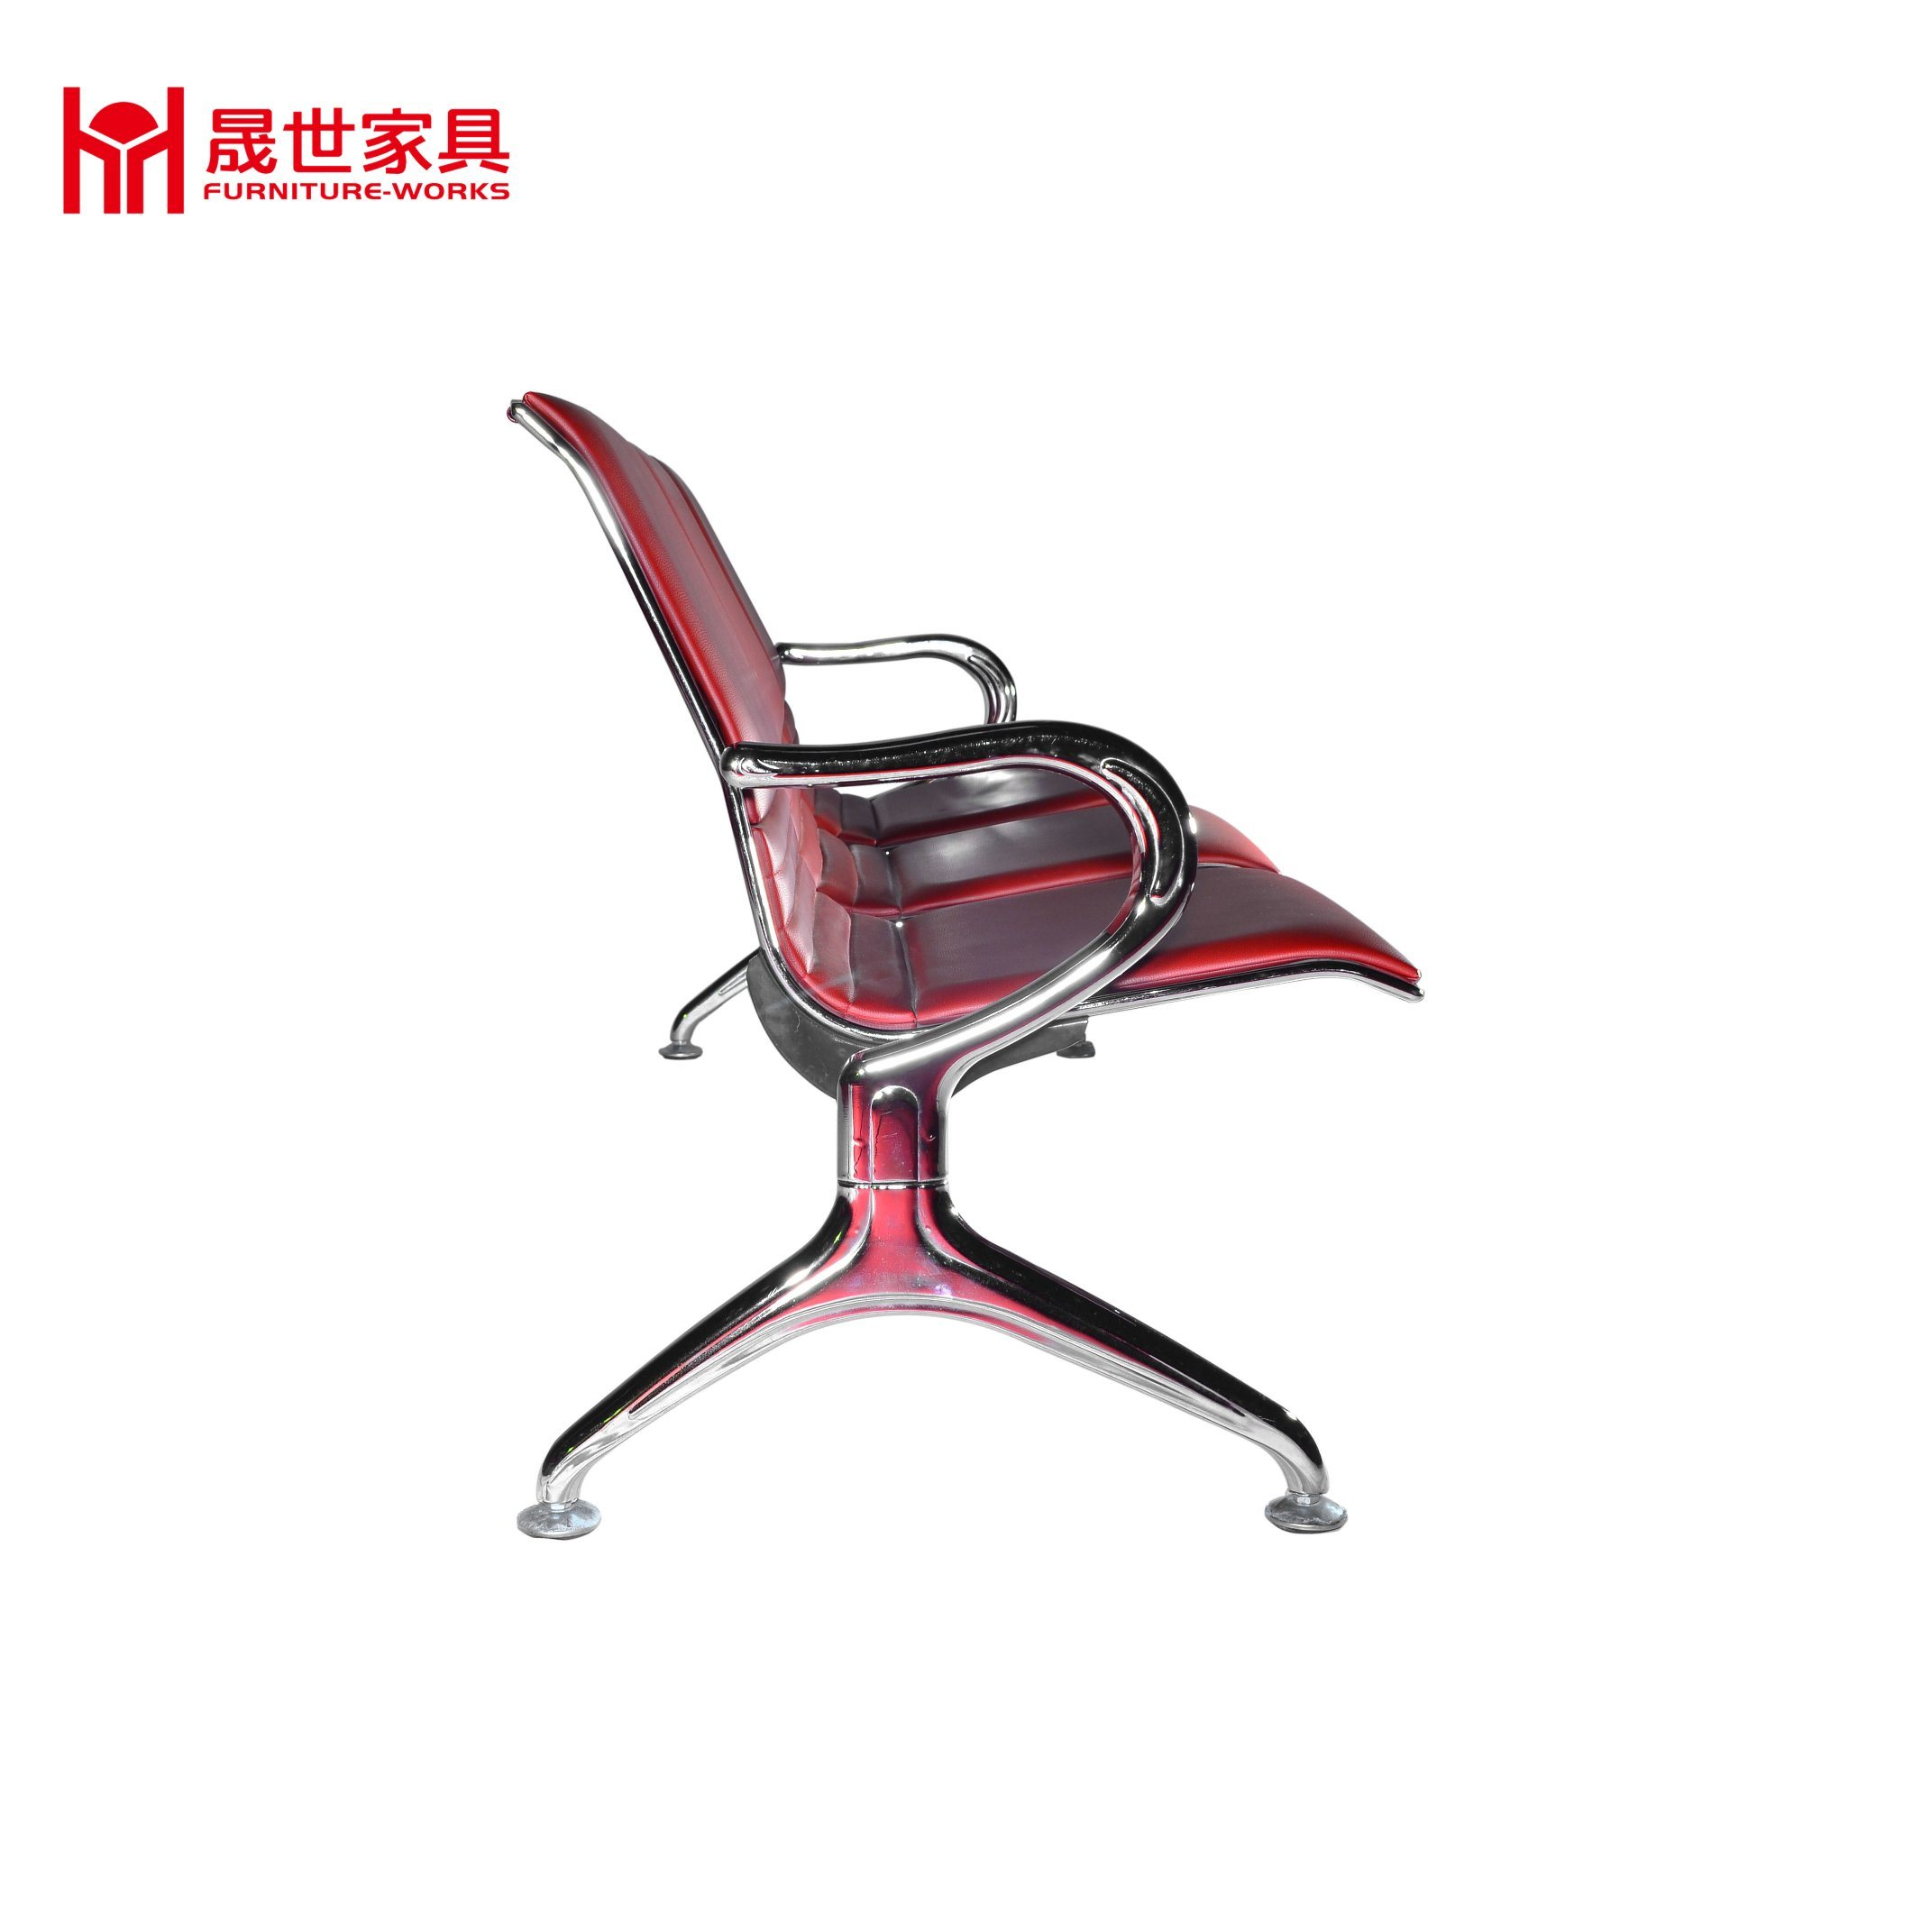 High Quality 3 Seat Full PU Padded Airport/Hospital/Station Bench Chair Waiting Area